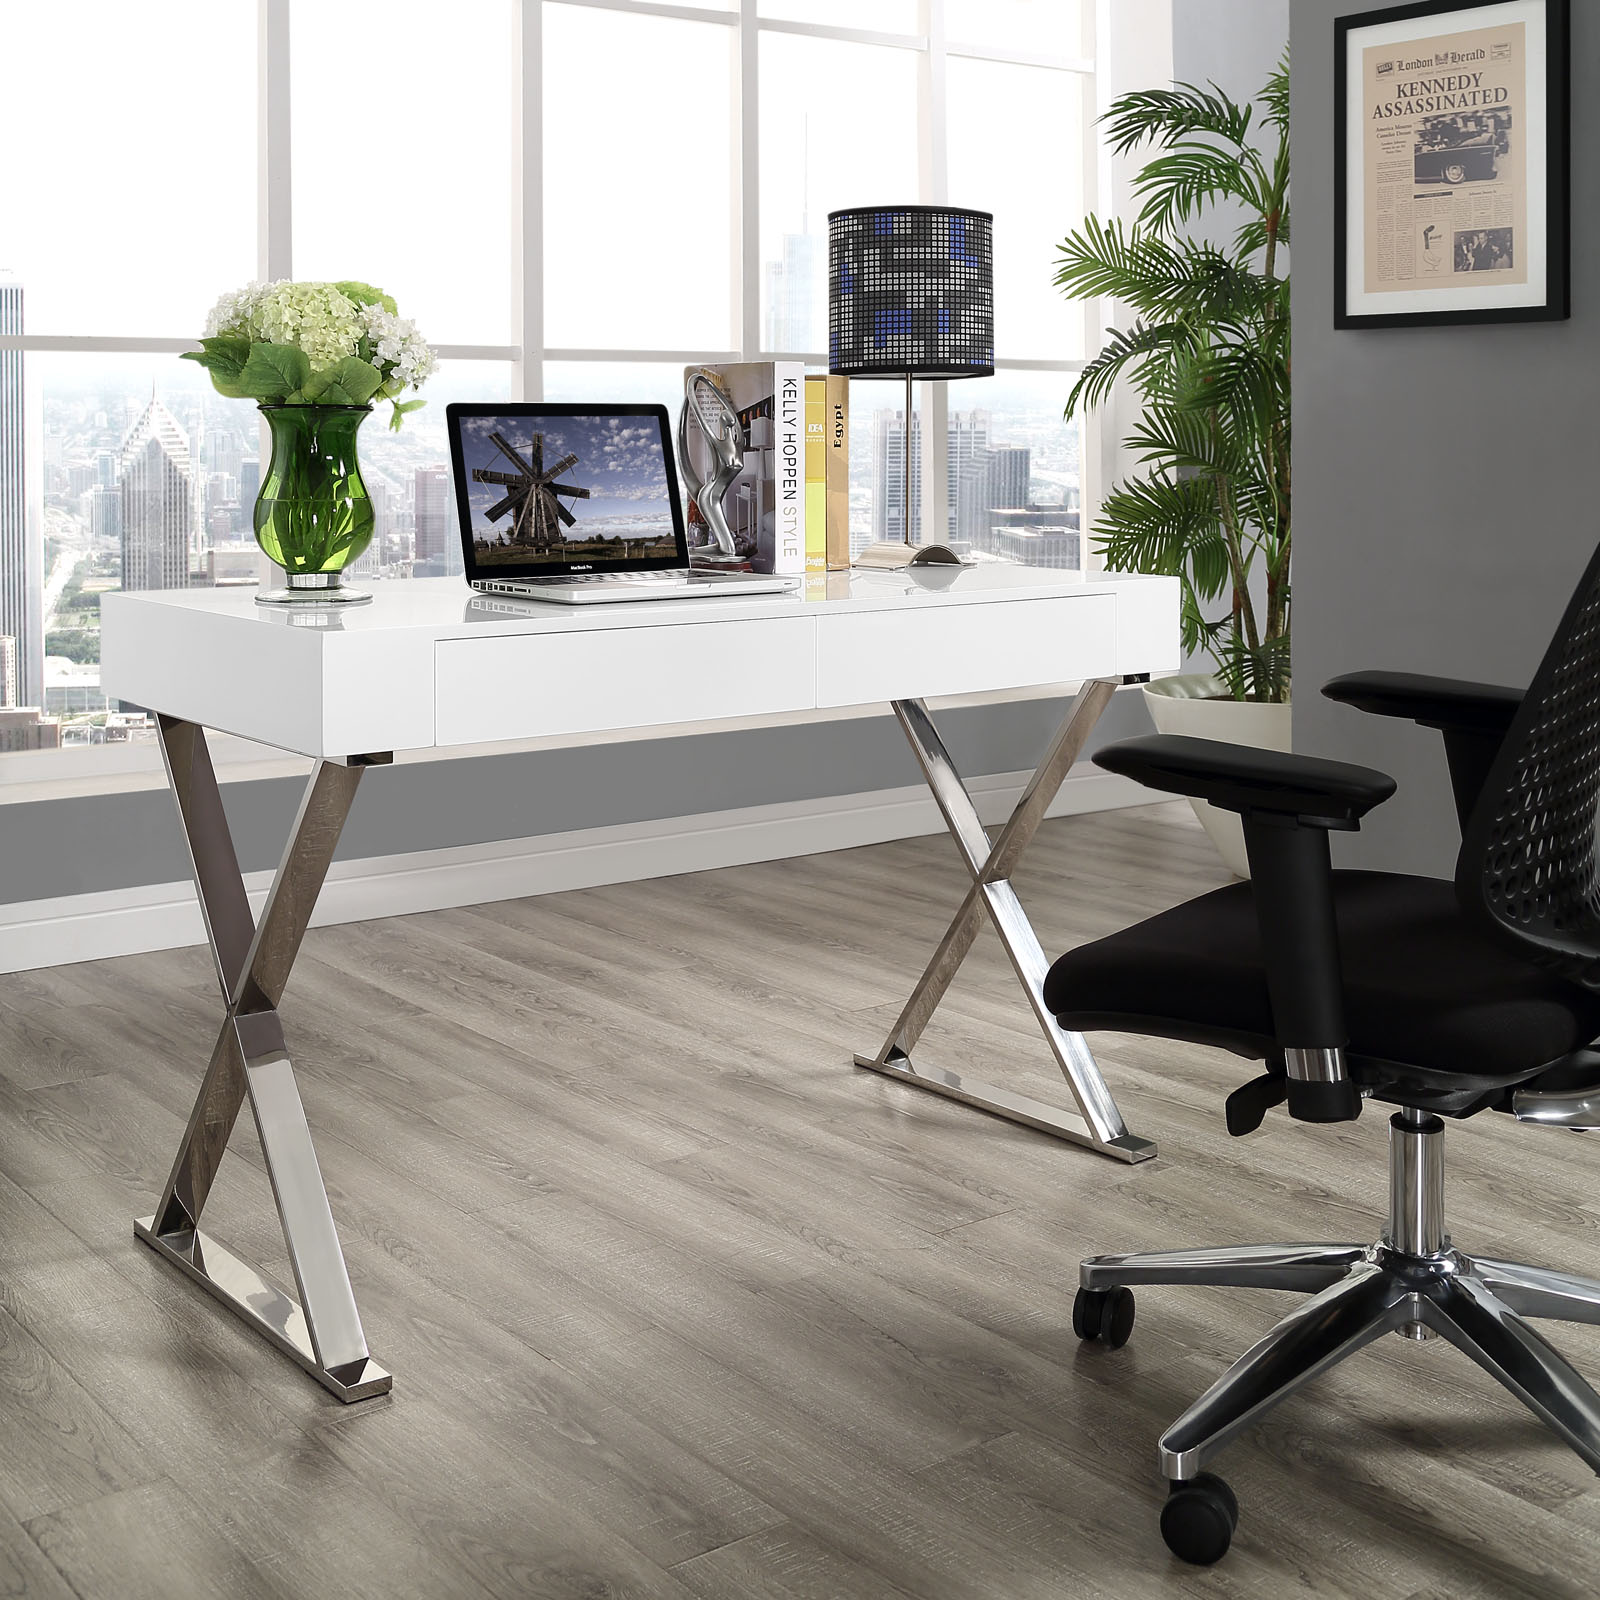 Glam Desk Modern Furniture Brickell Collection